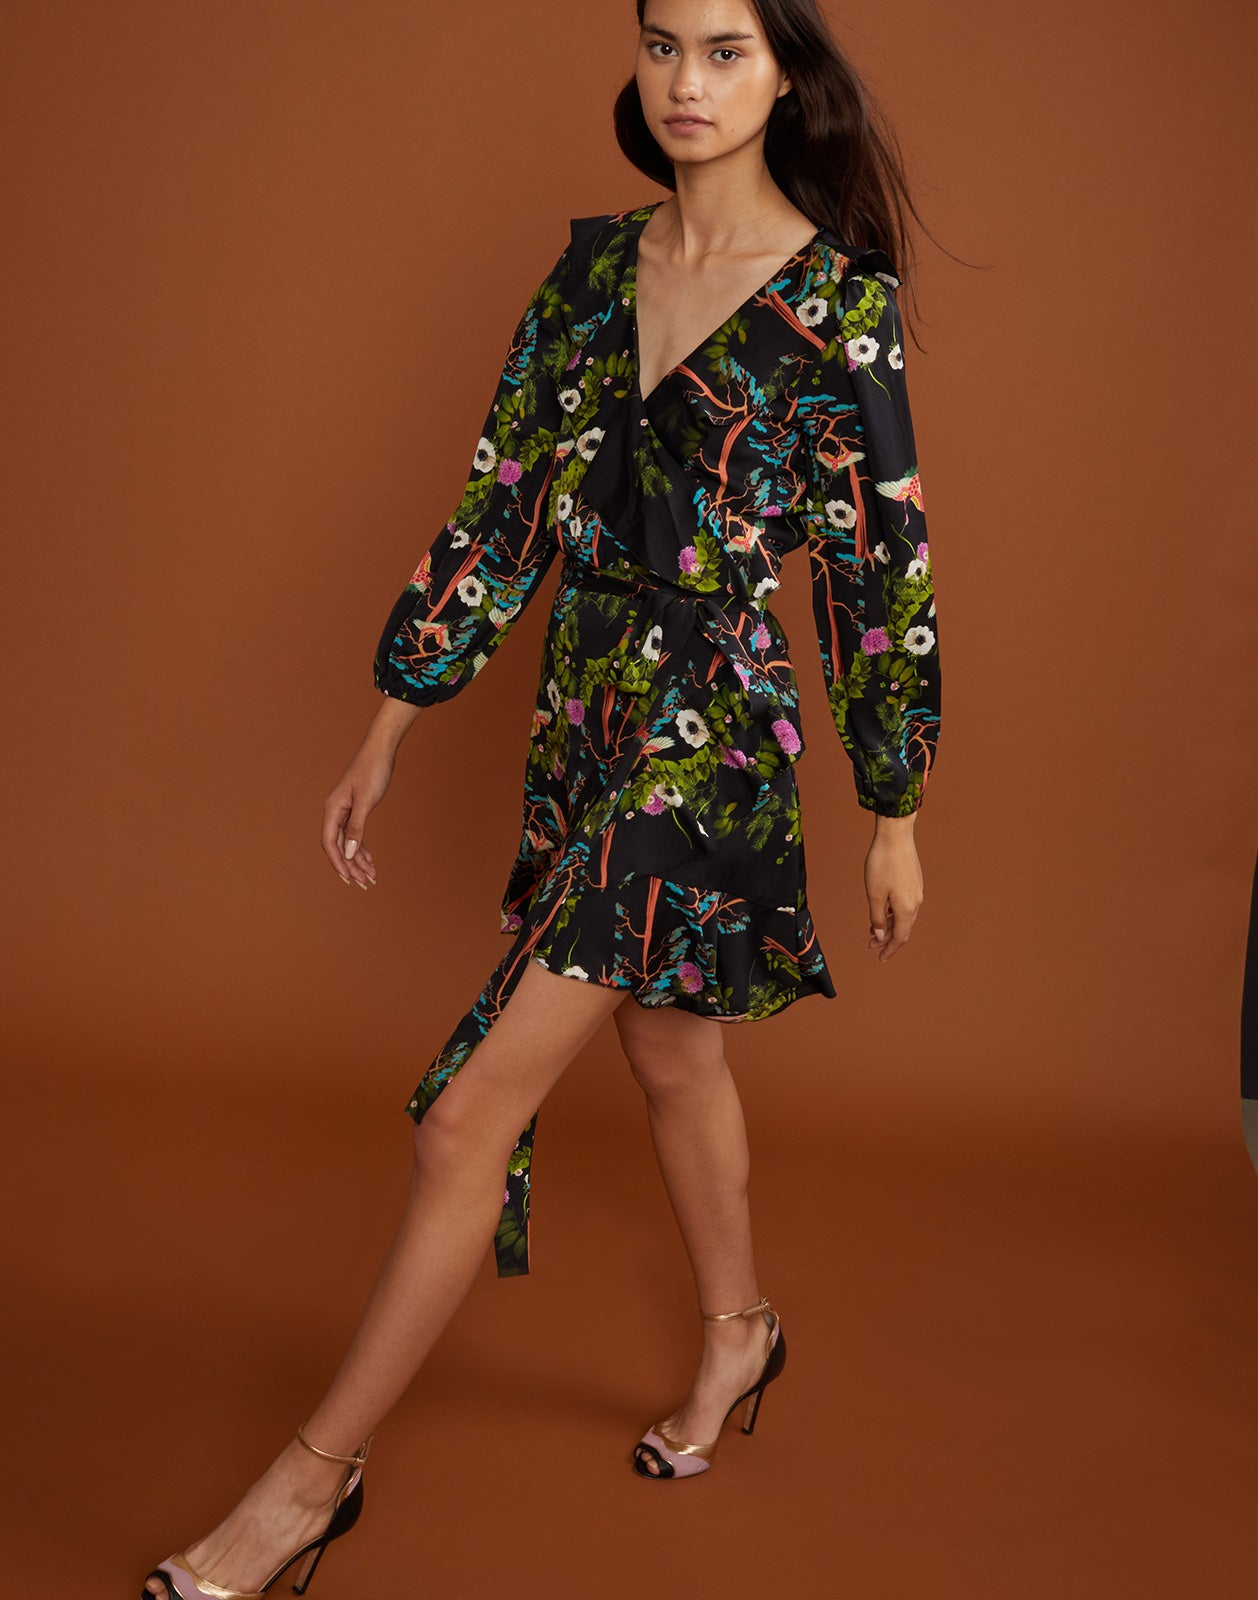 Front view of Malibu wrap dress in vibrant dark floral print.